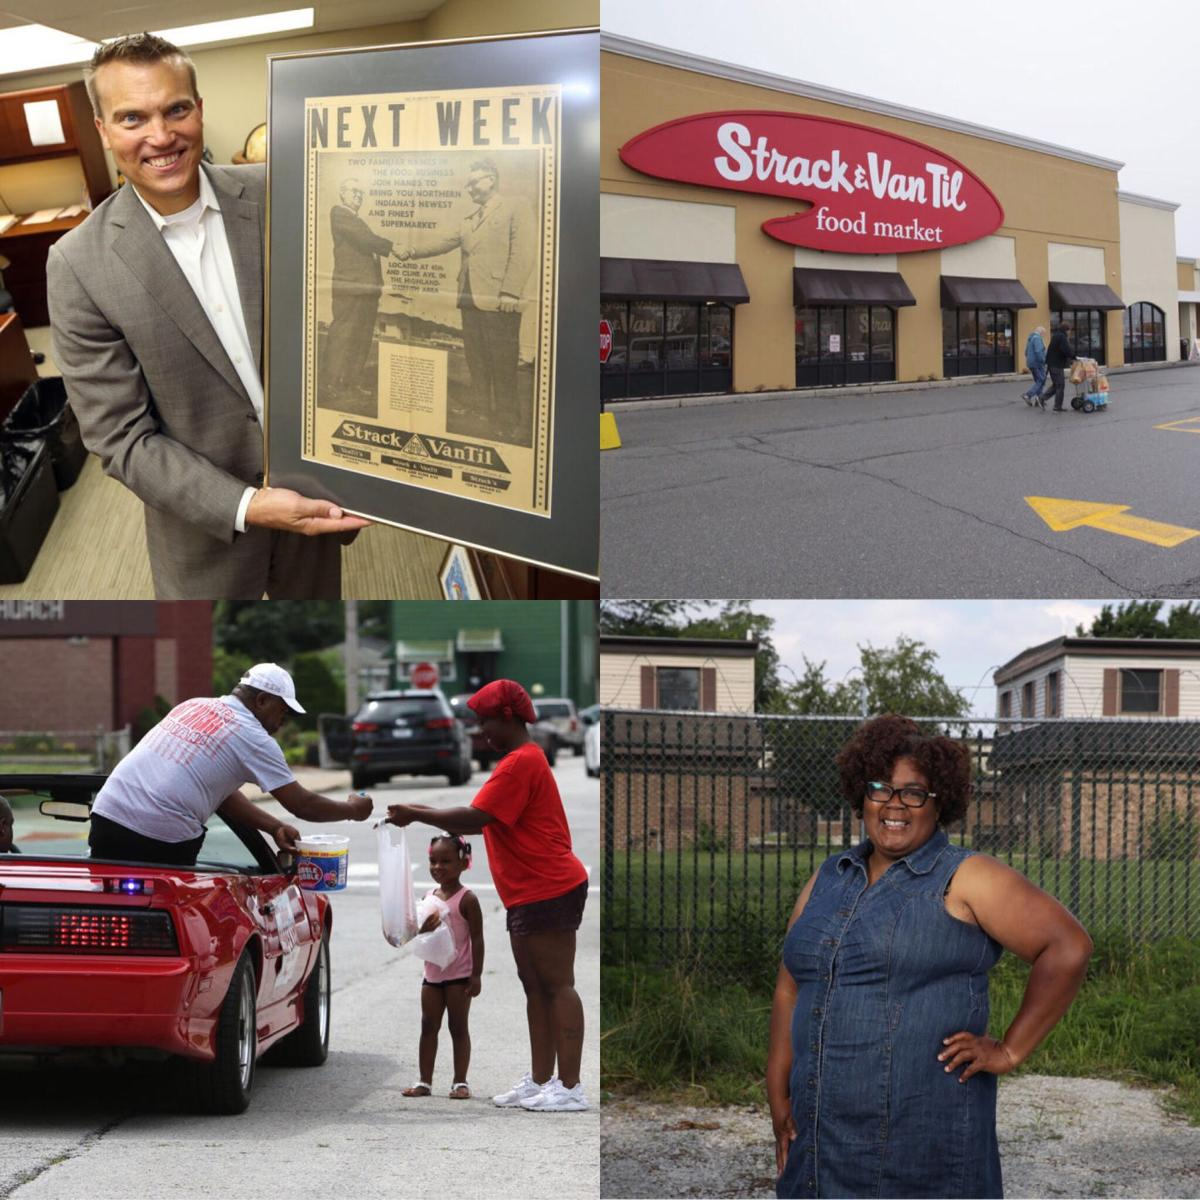 Latest Times podcasts highlight the return of Strack & Van Til, catches us up on the East Chicago lead crisis